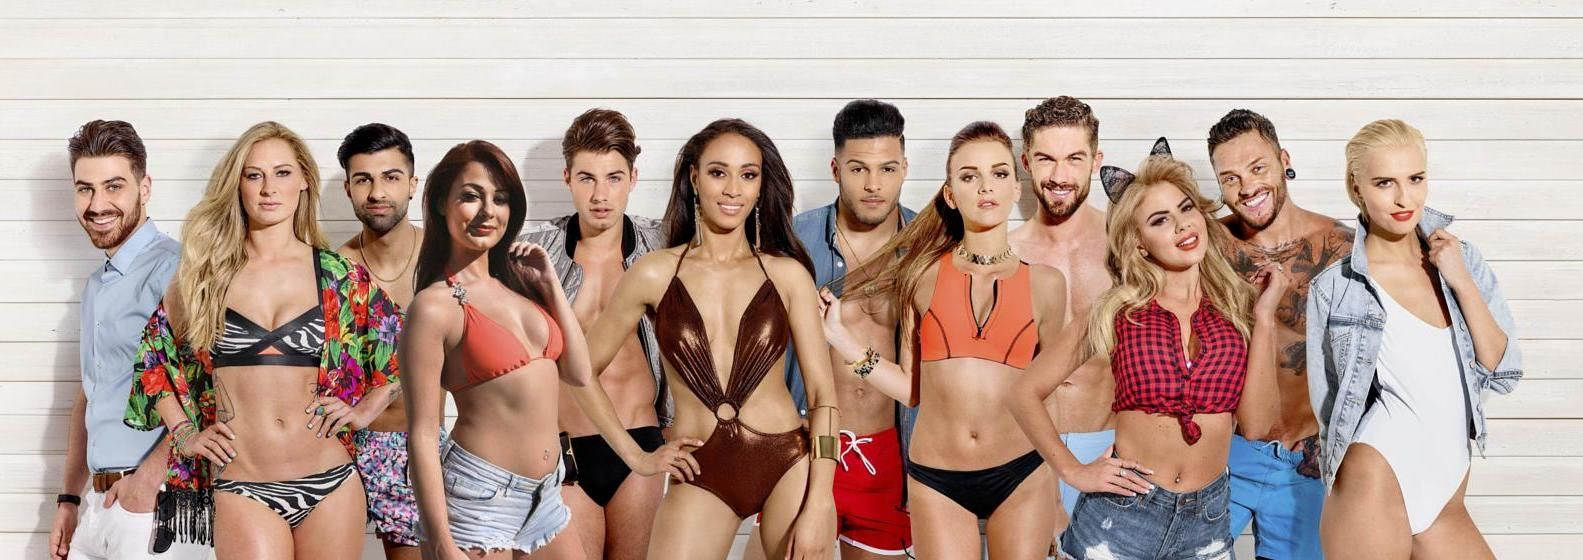 Image may contain: Love Island most shocking moments, Love Island, best bits, highlights, most controversial, series 1, season one, 2015, Underwear, Woman, Female, Swimwear, Bikini, Human, Person, Apparel, Clothing